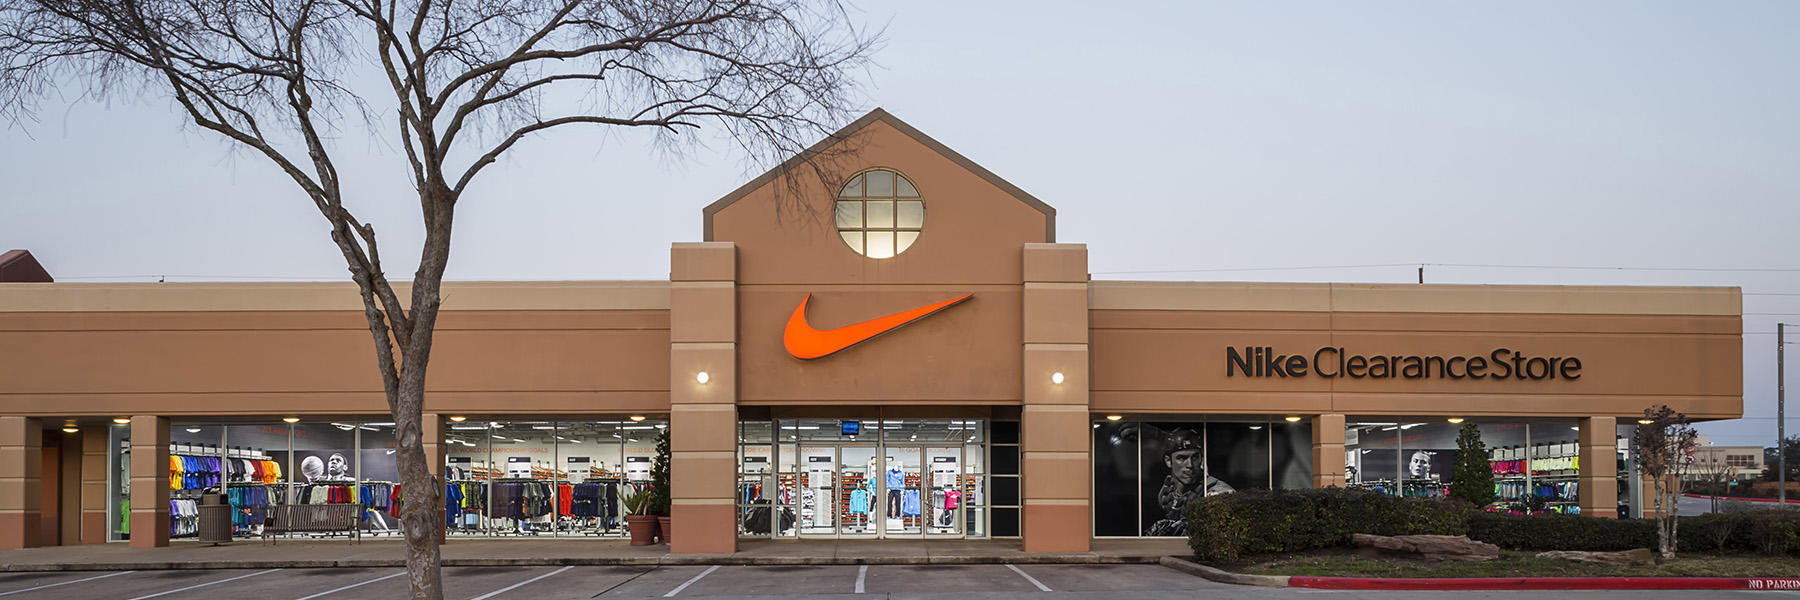 Nike Store - Nike Outlet Store hot sale. Visit Nike Store Online you can find a variety of styles and highest quality shoes. Welcome to Nike Clearance Store to choose a pair Nike shoes.